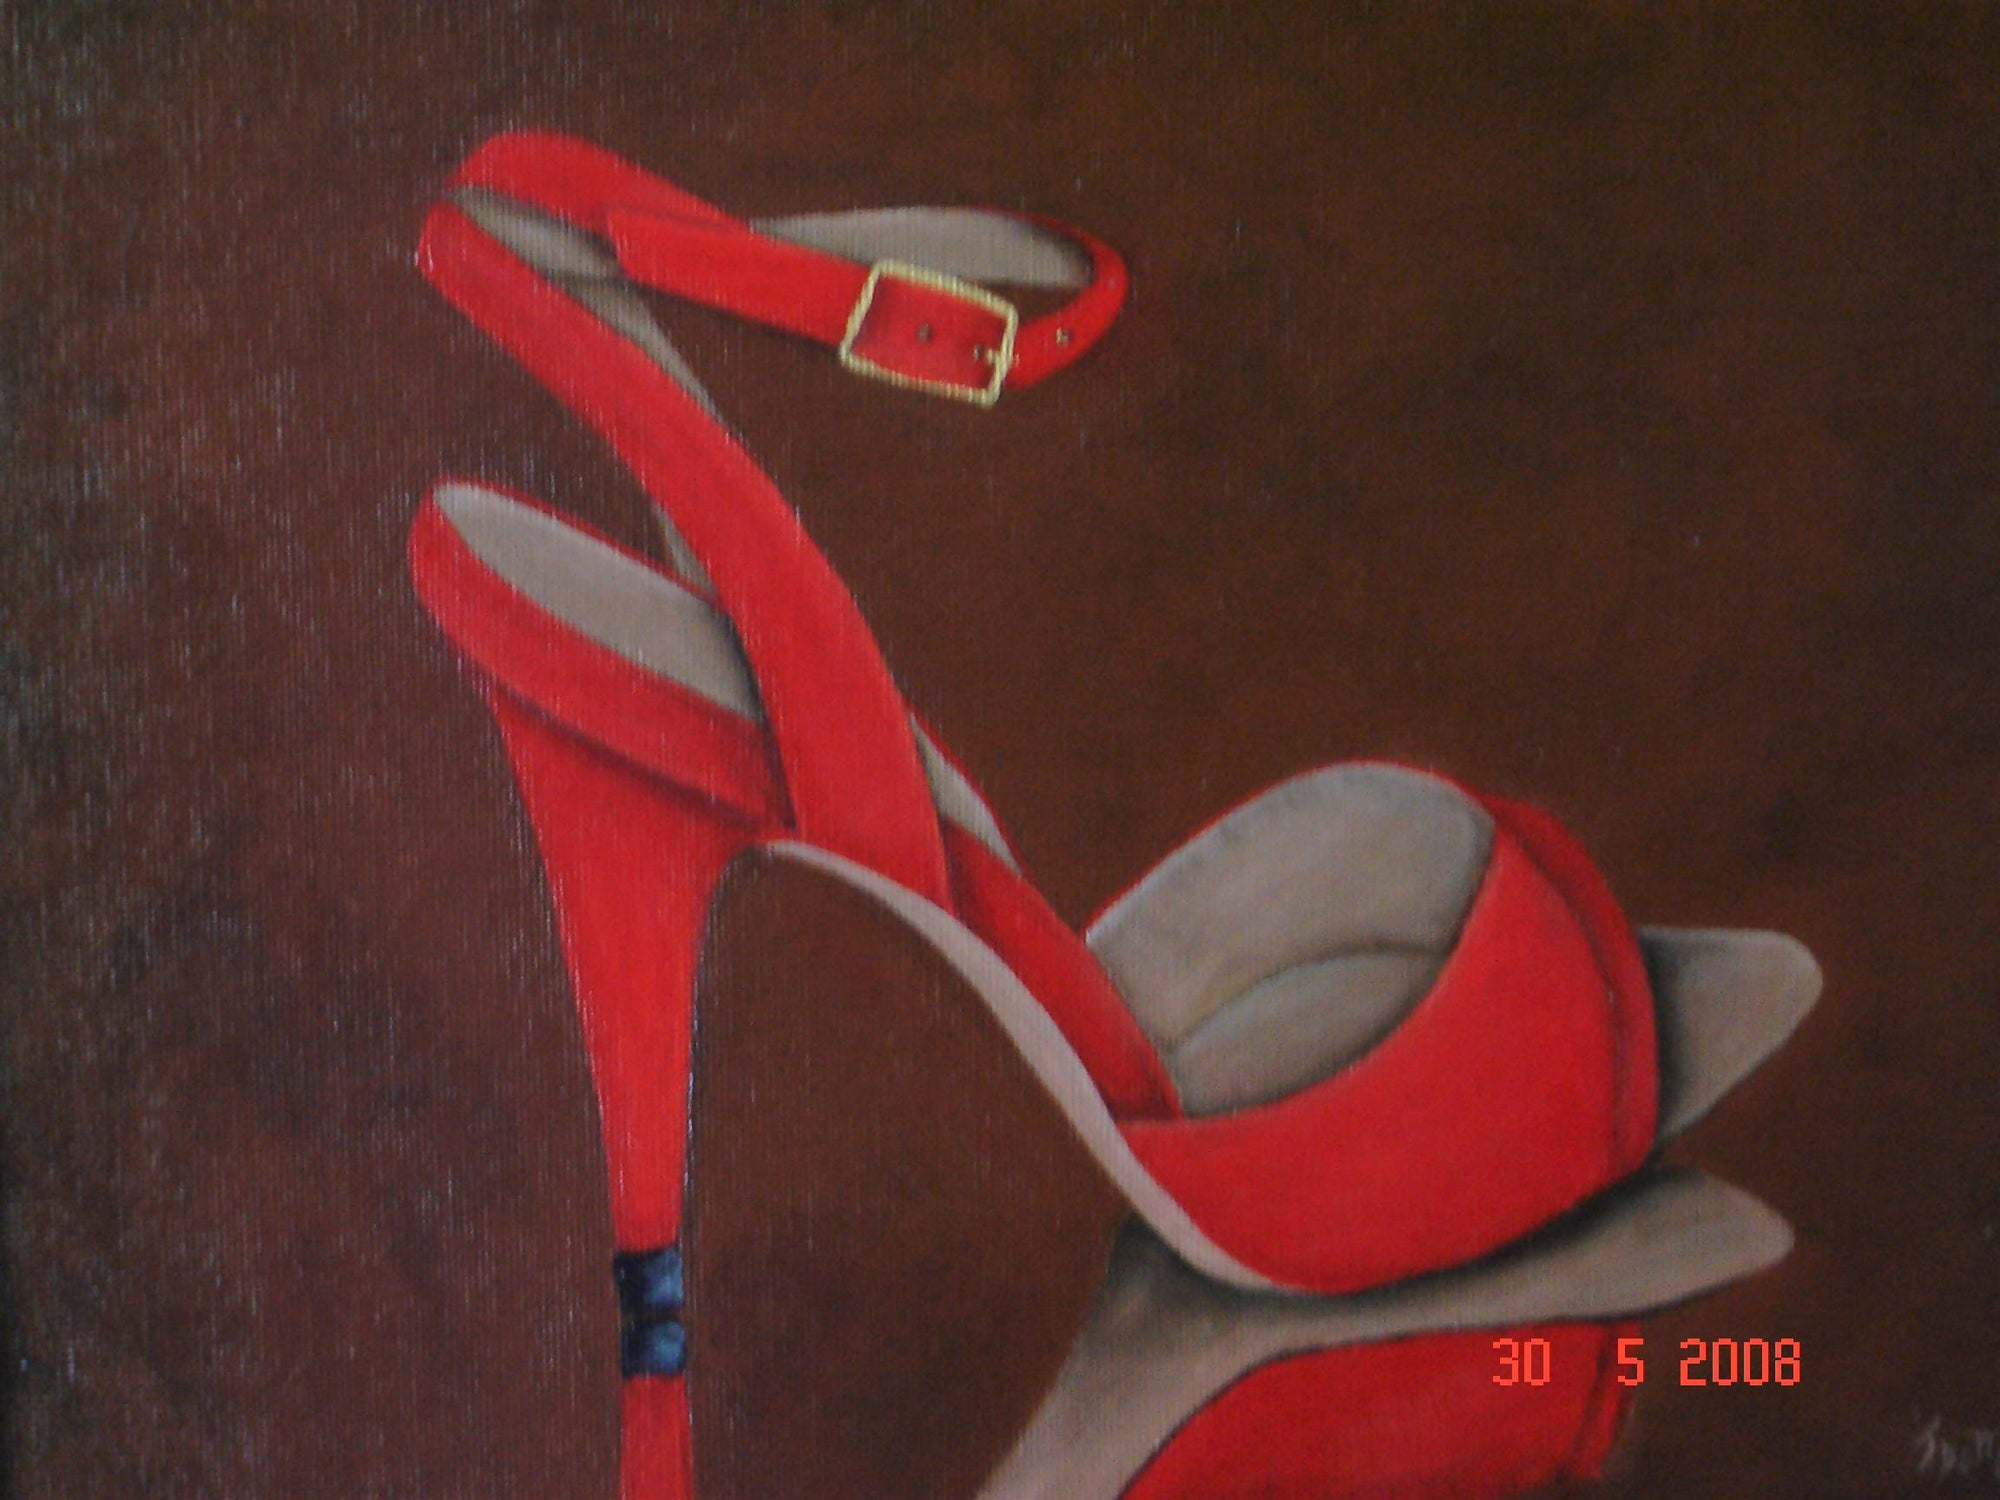 Red Shoe diarys